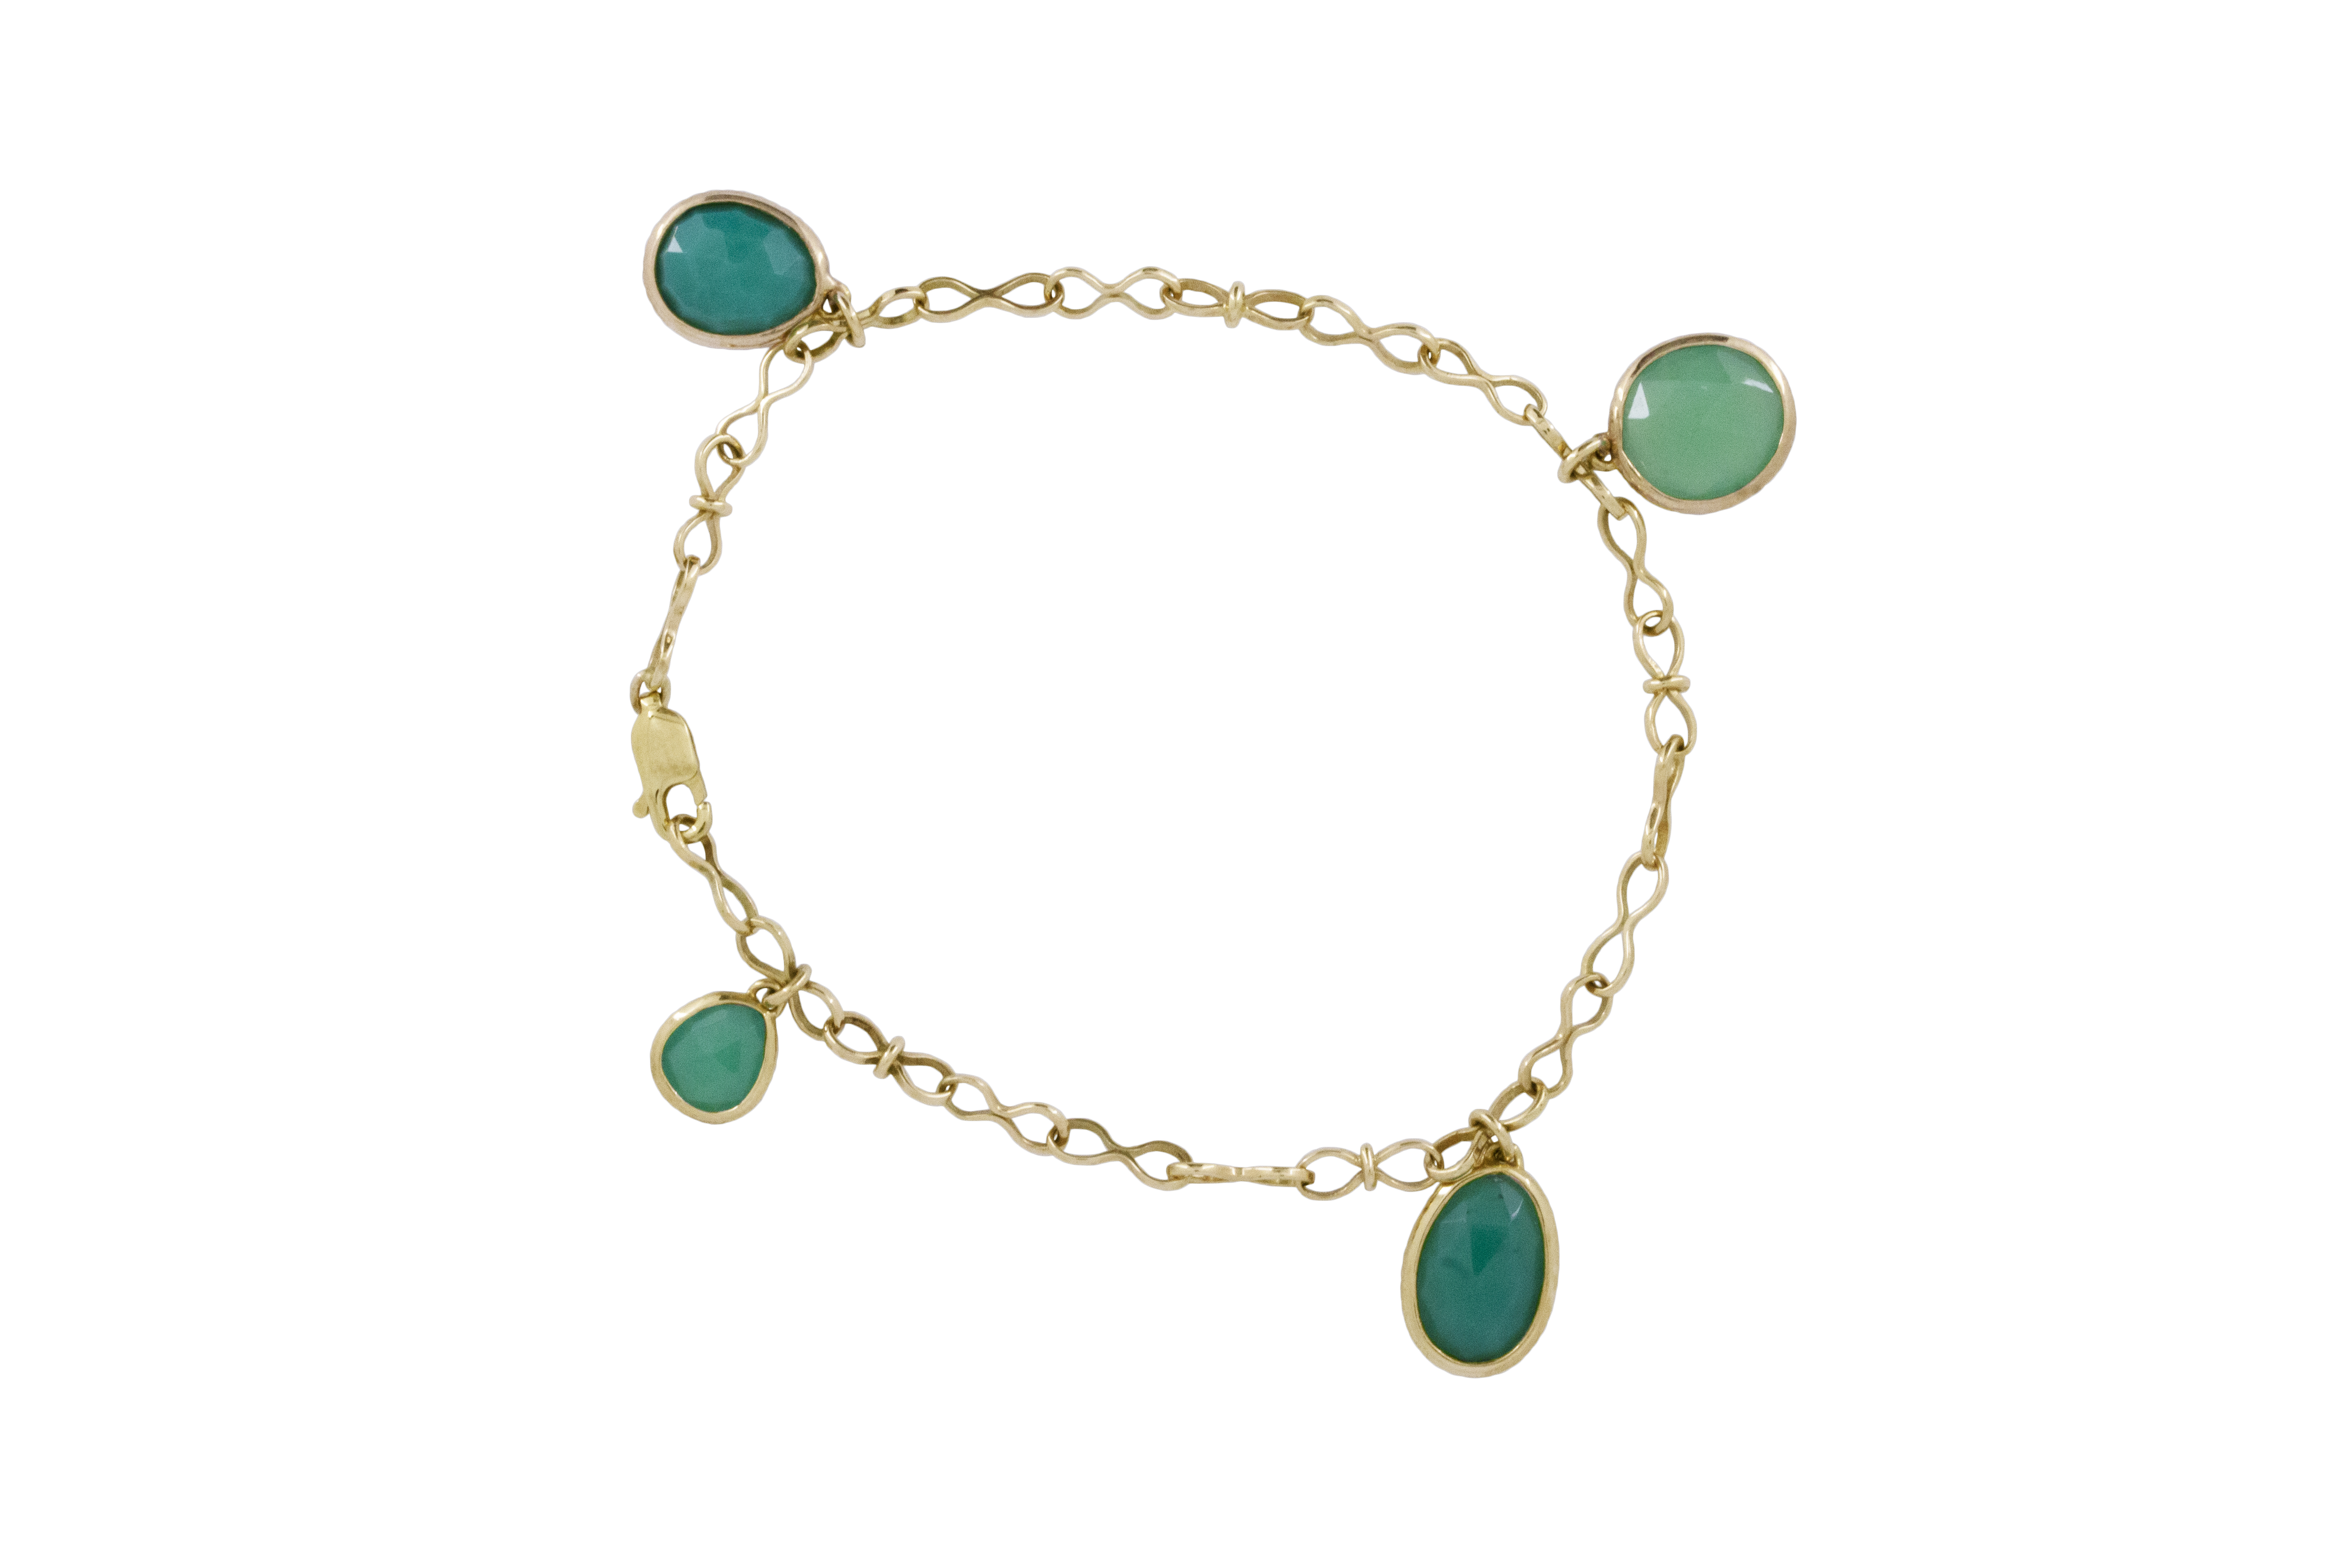 Chrysoprase Dangle Bracelet in 9ct Yellow Gold